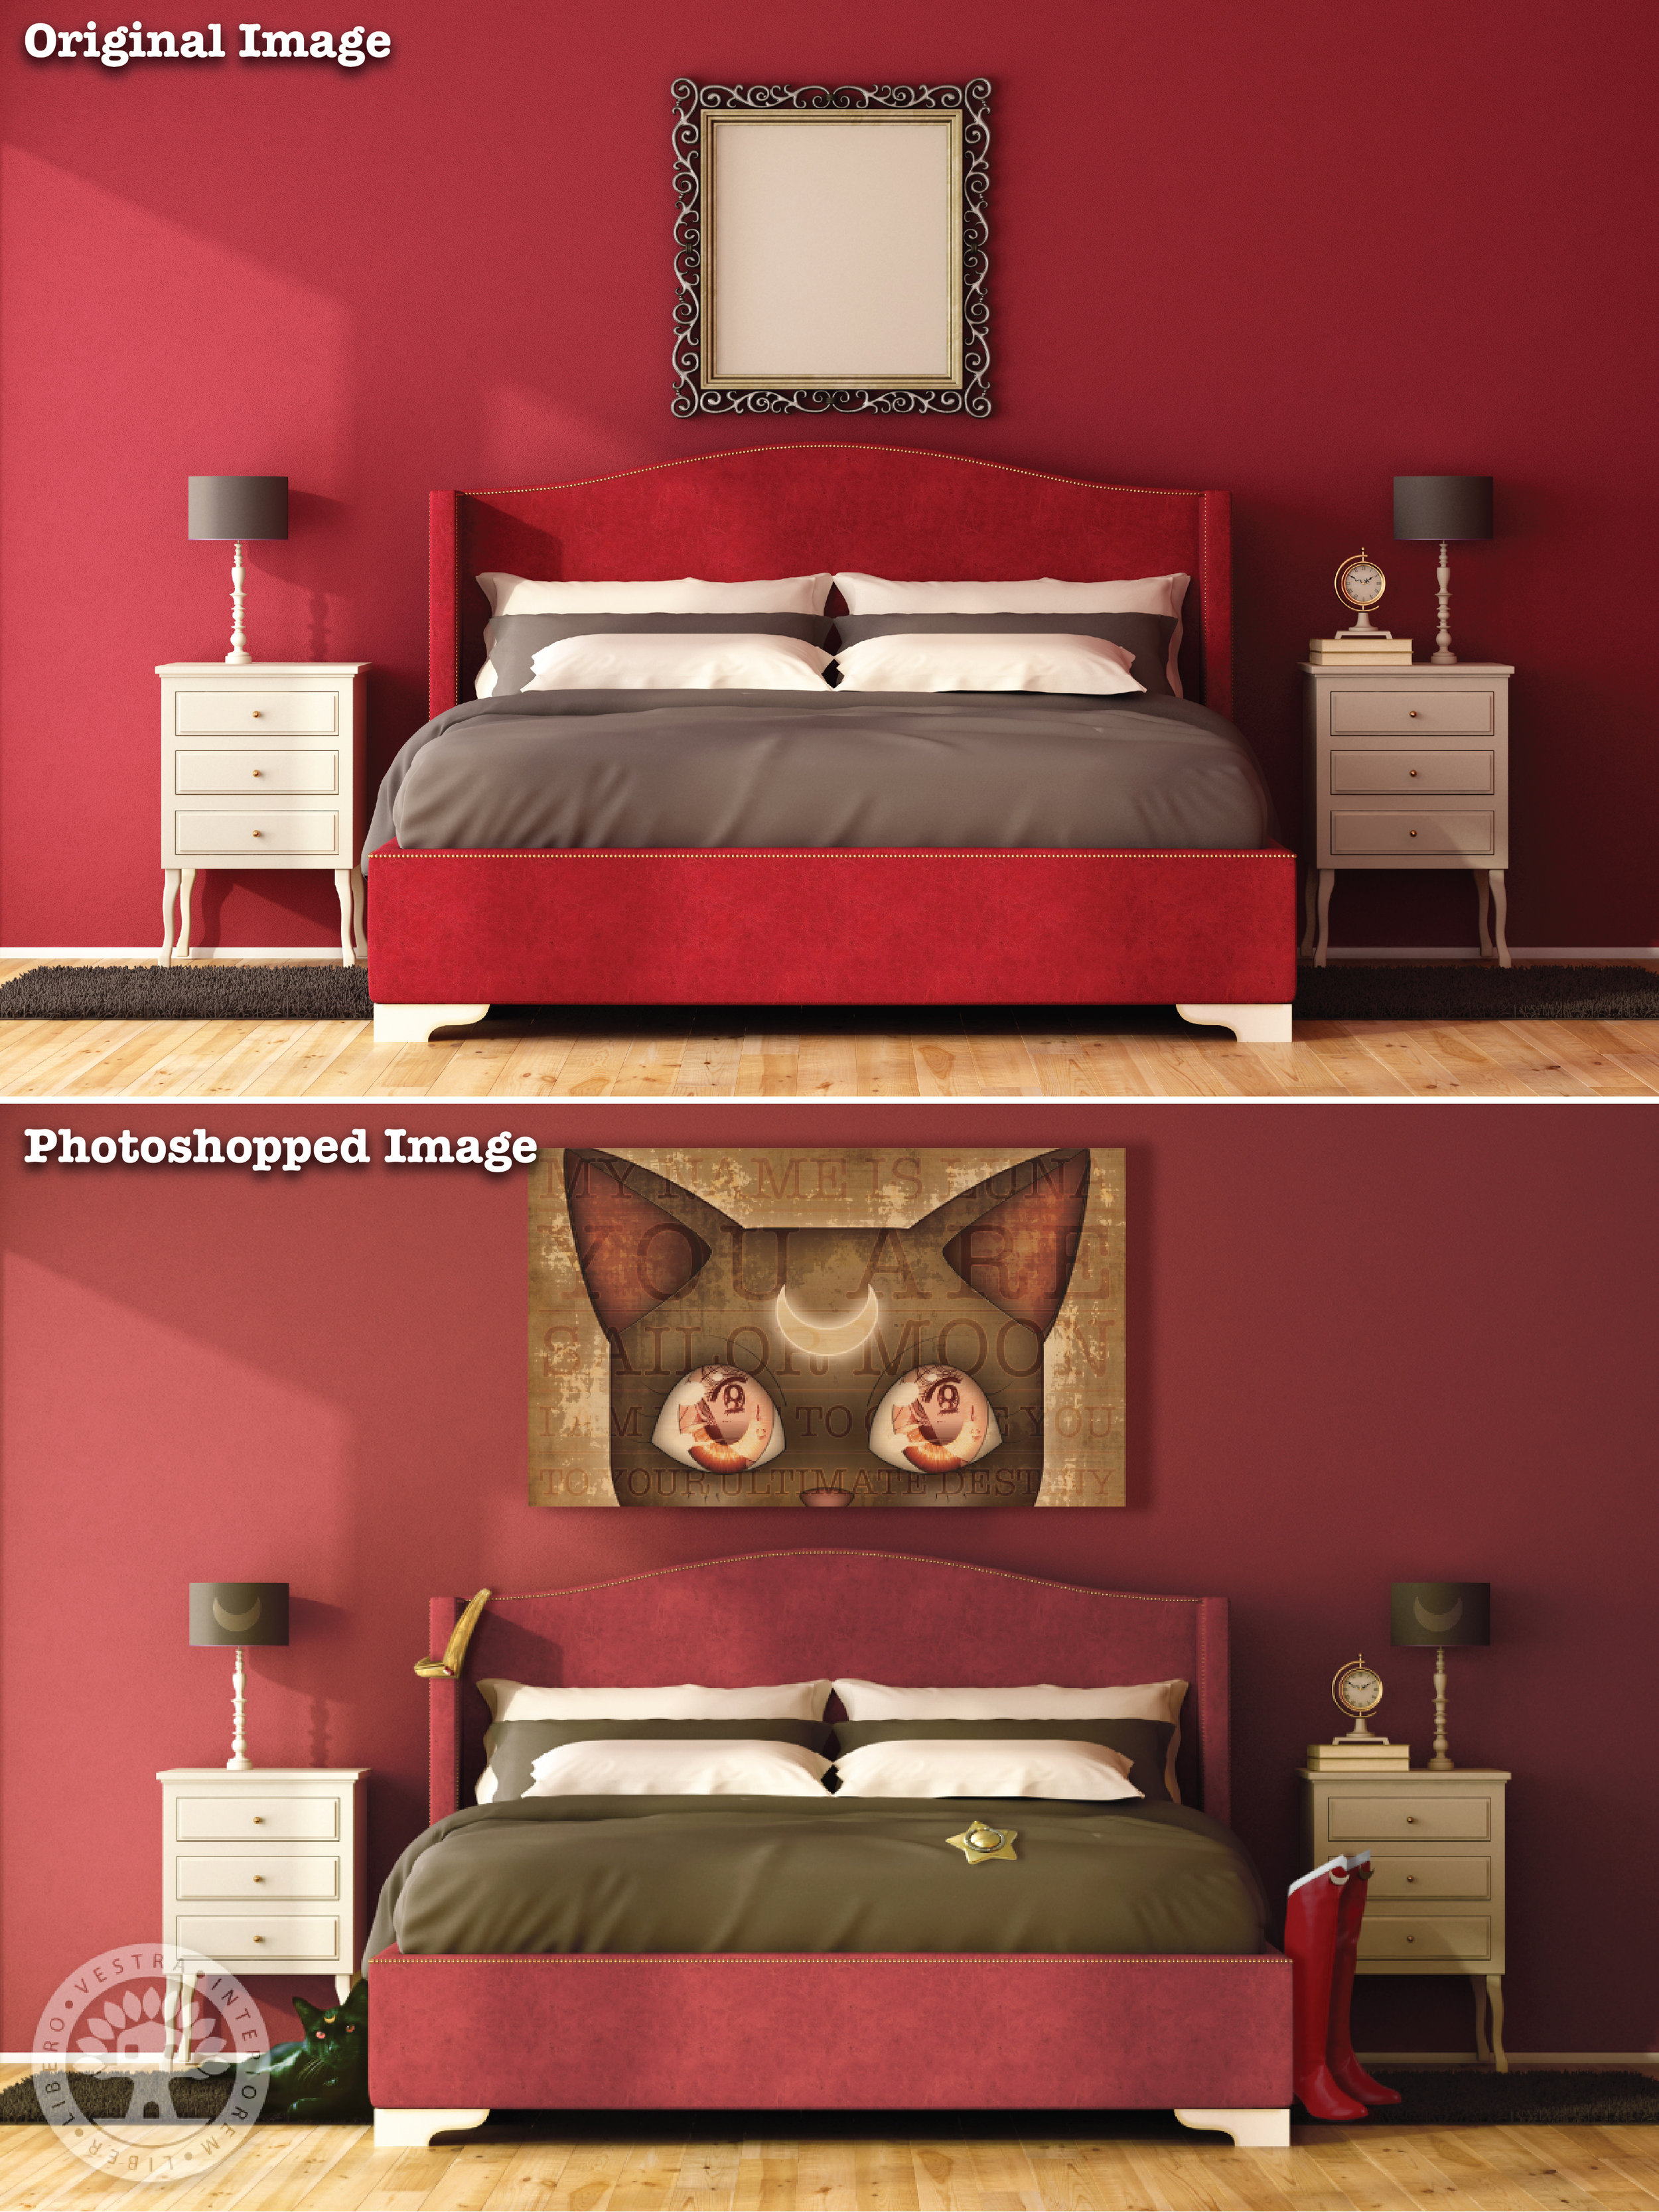 """""""Usagi's Room"""" before and after Photoshop . ~ Corinne Jade, ClubHouse Collective"""